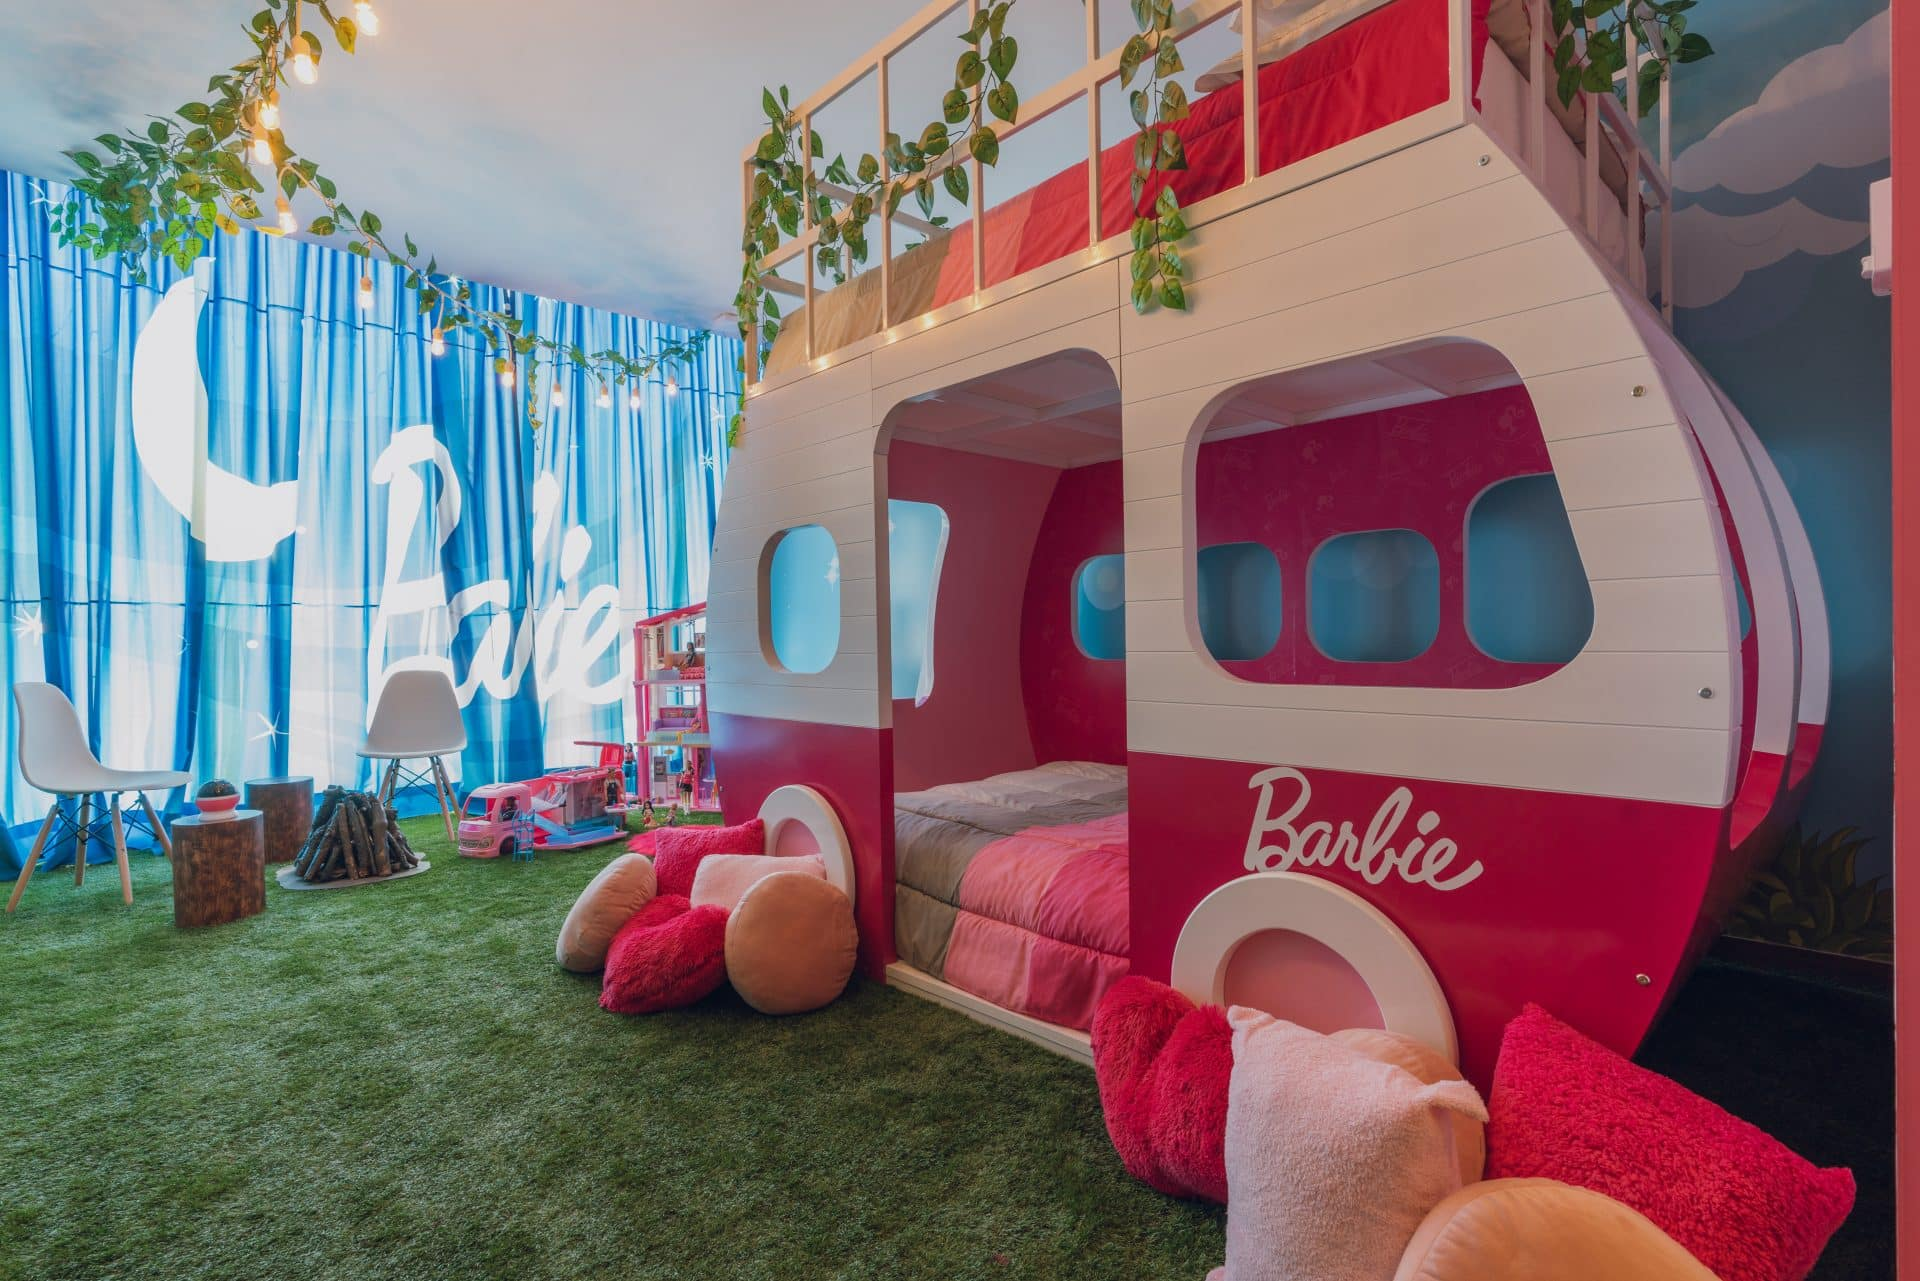 You Can Now Stay In A Barbie-Themed Hotel Suite